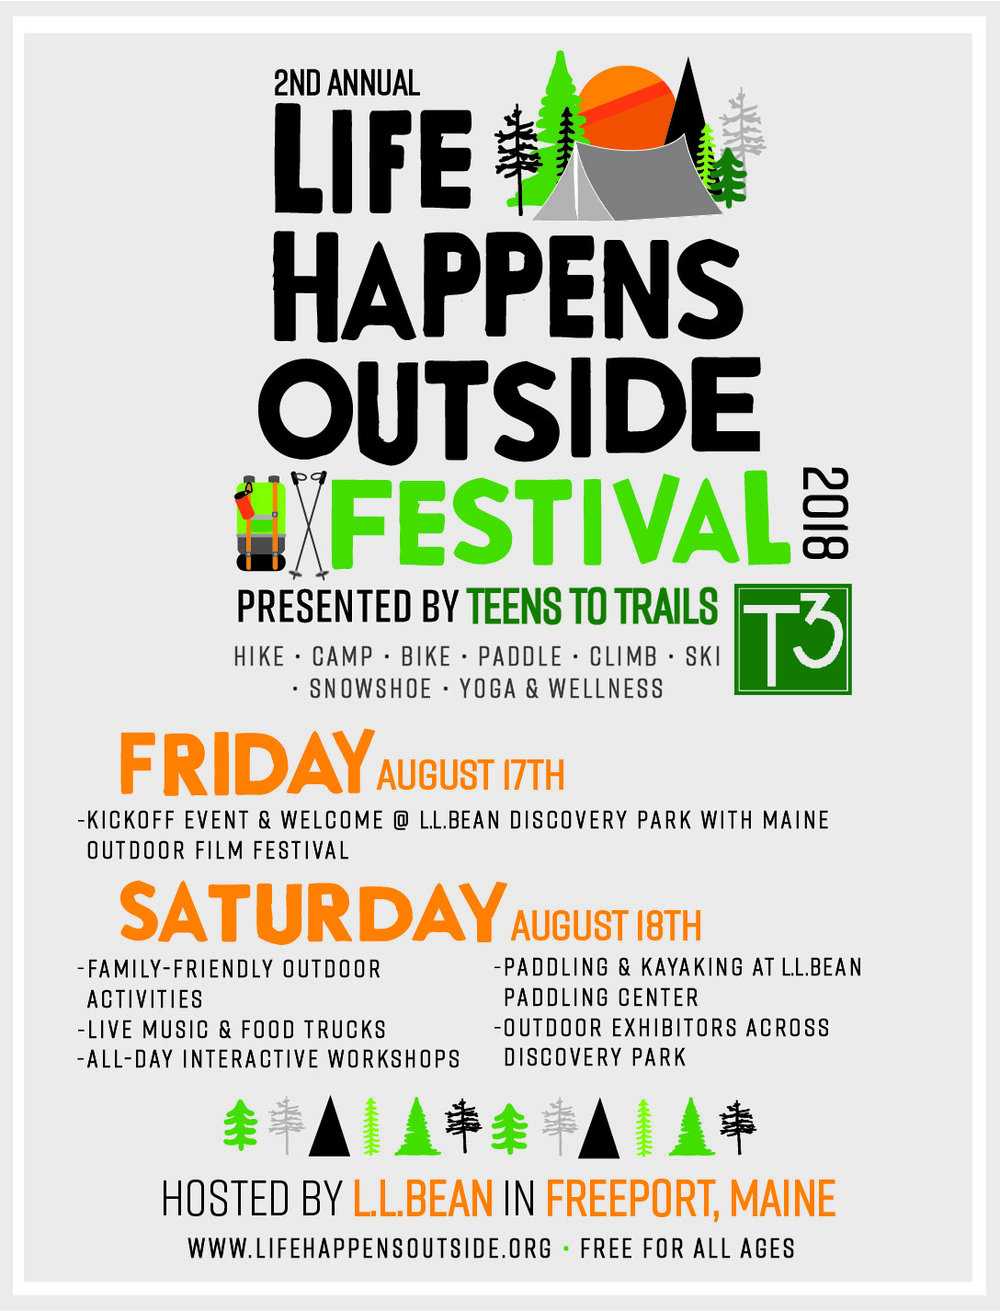 Life Happens Outside Festival poster